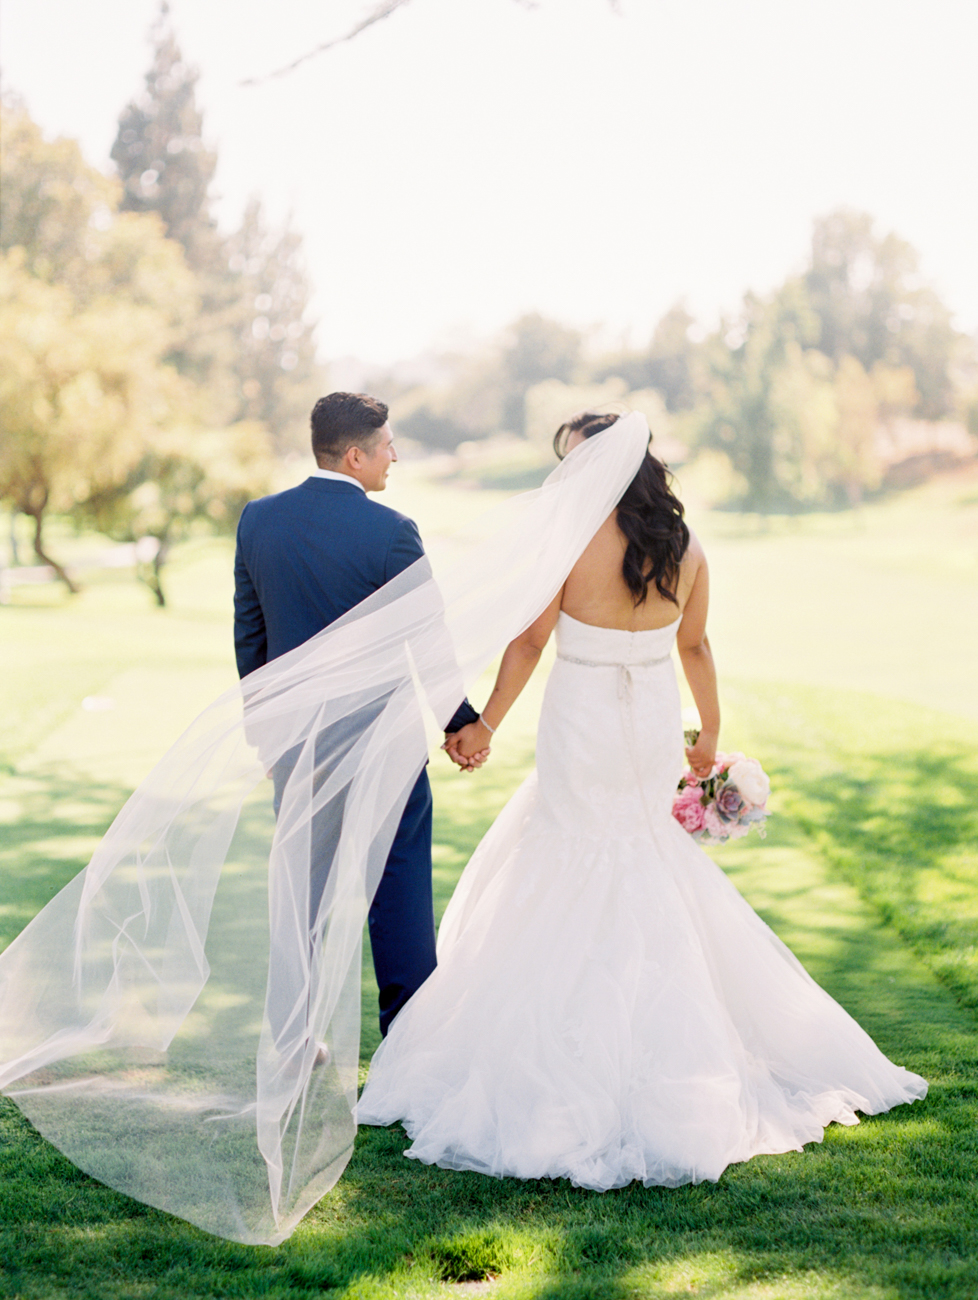 DennisRoyCoronel_hacienda_golf_club_wedding-11.jpg